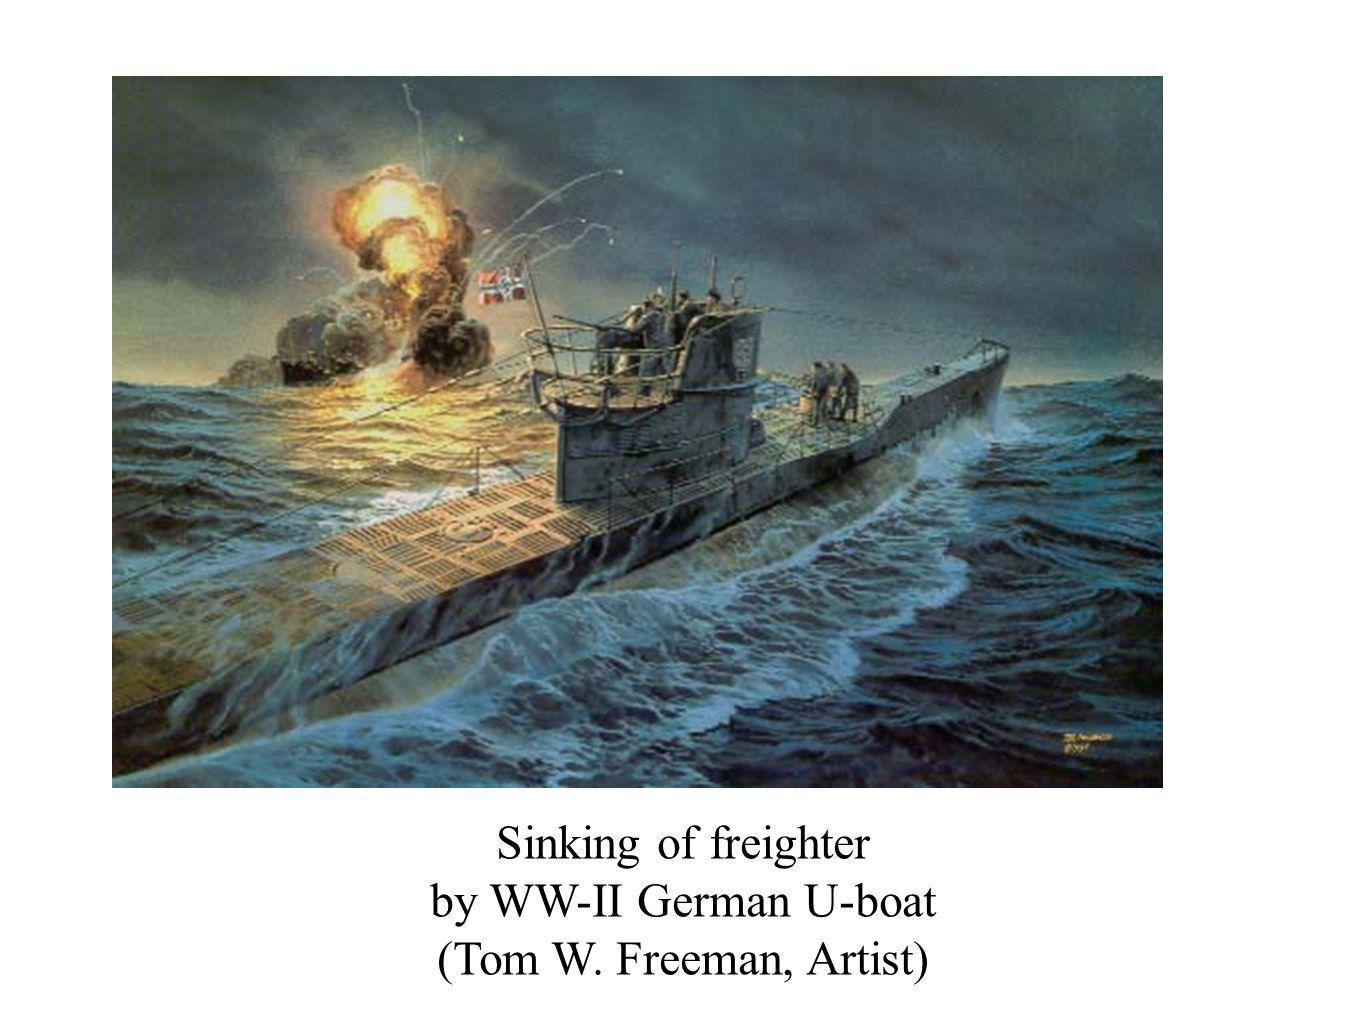 Sinking of freighter by WW-II German U-boat (Tom W. Freeman, Artist)